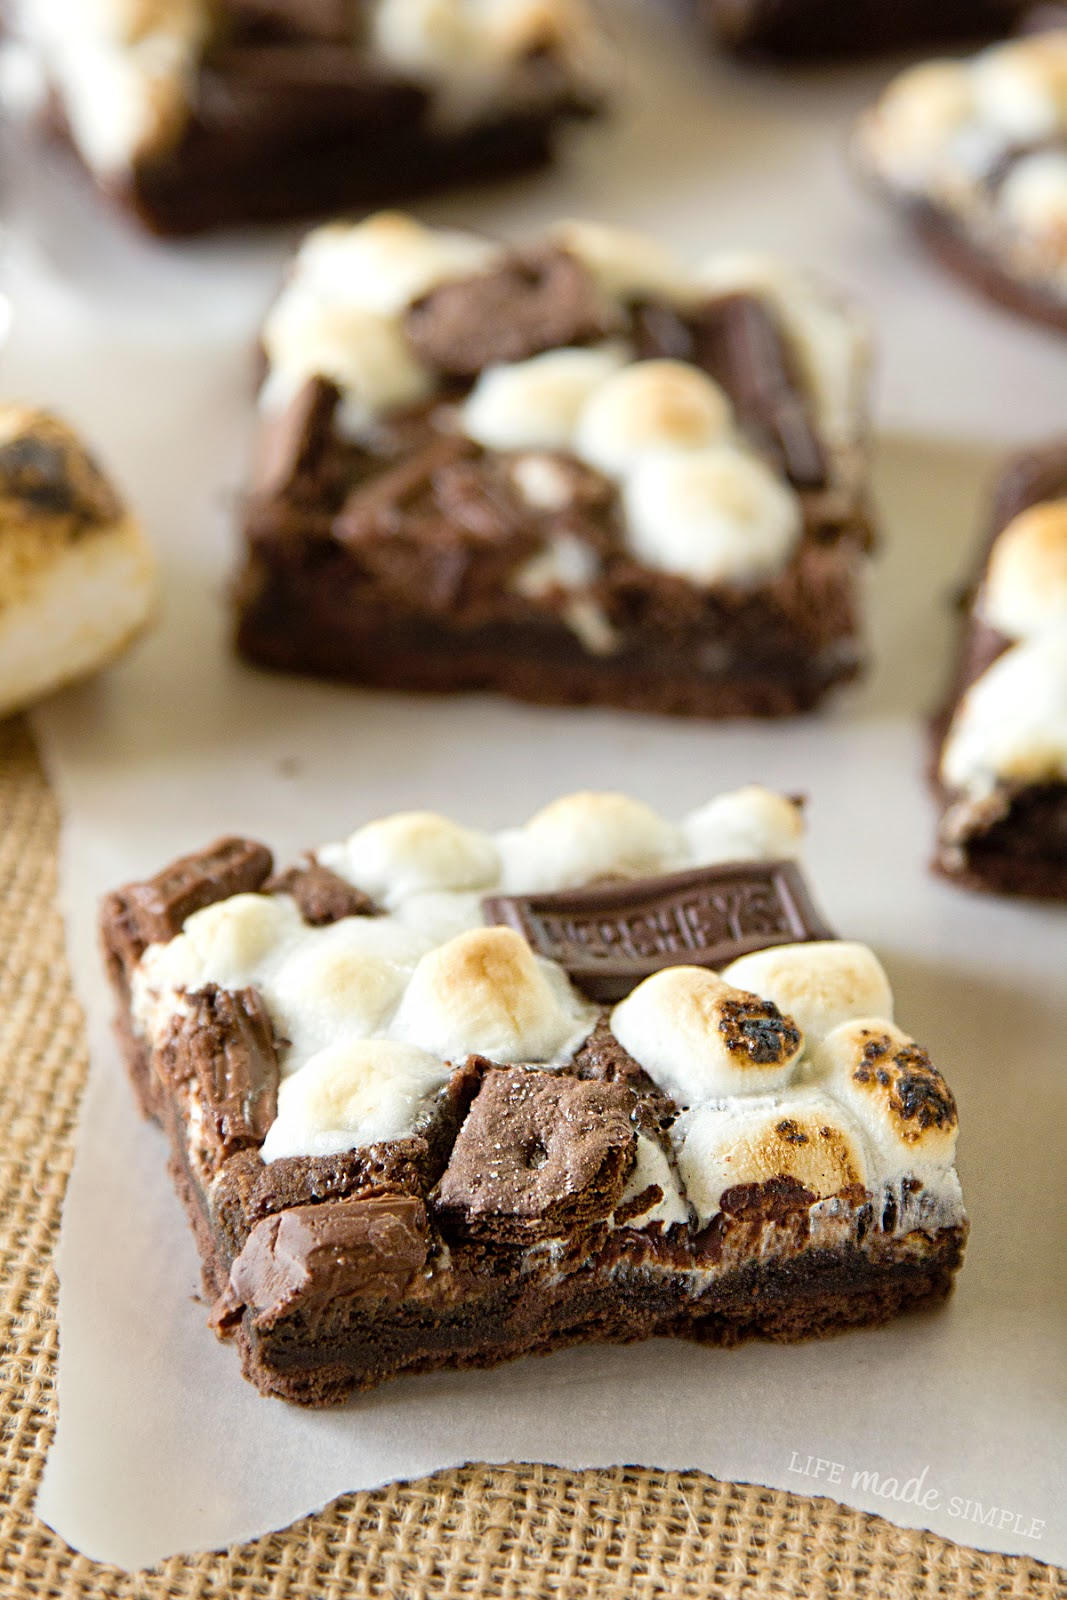 Hershey's Chocolate S'mores Bars - Life Made Simple